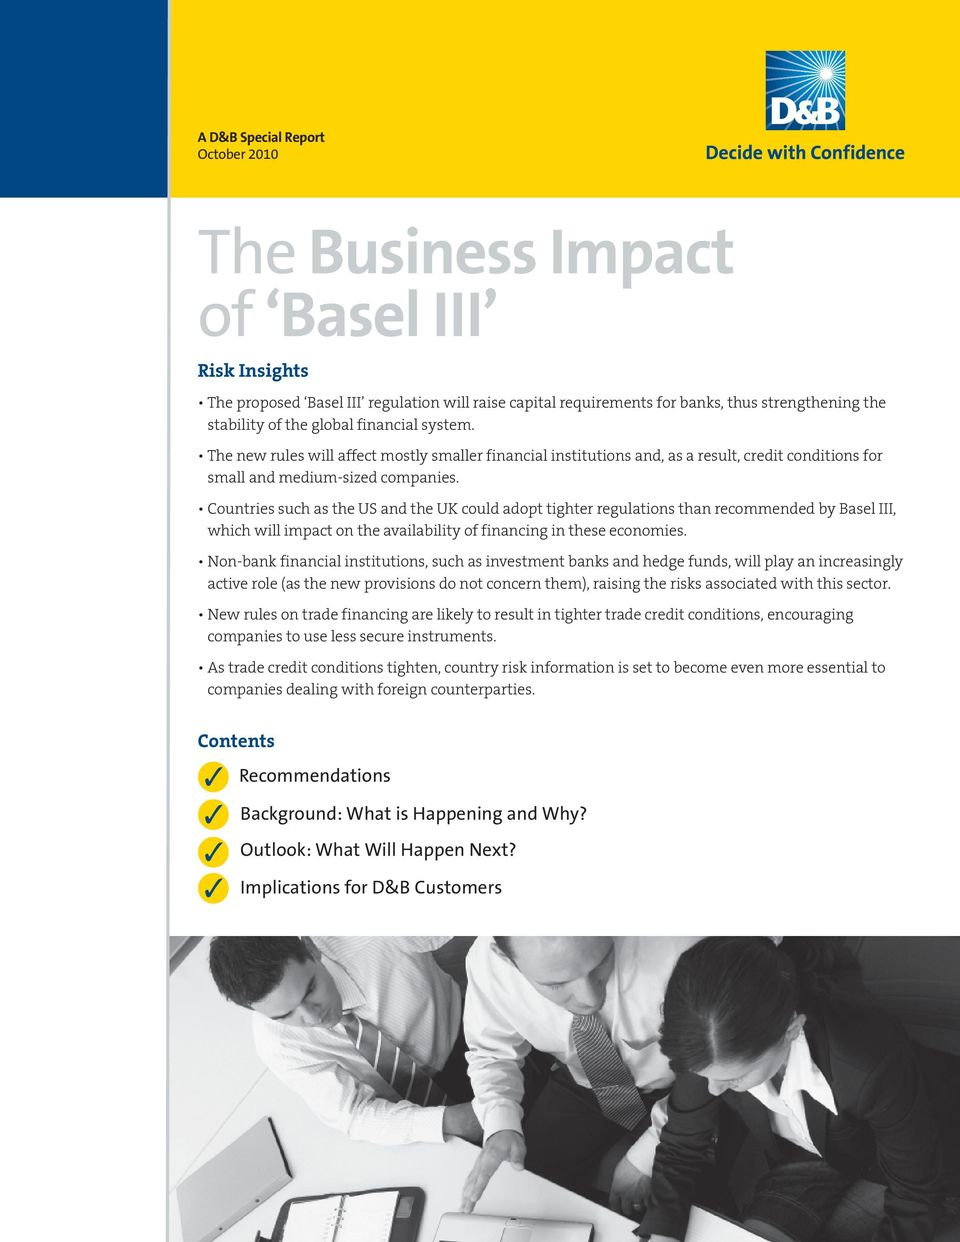 Countries such as the US and the UK could adopt tighter regulations than recommended by Basel III, which will impact on the availability of financing in these economies.